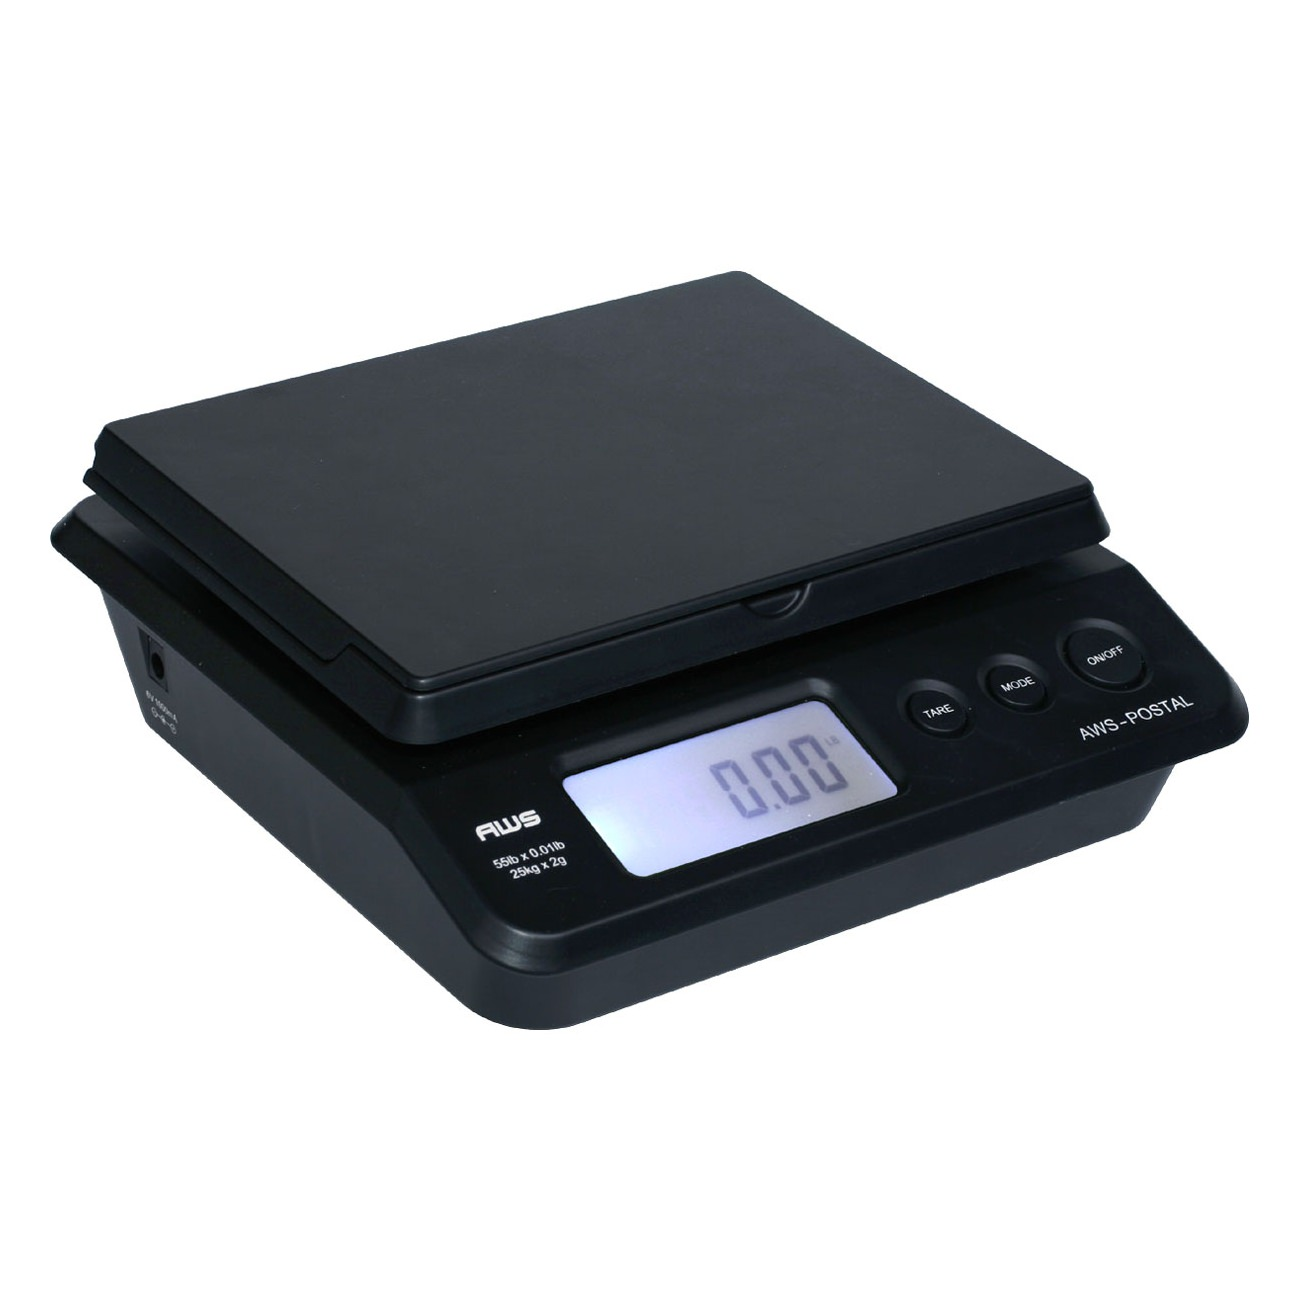 American Weigh Scales PS-25 Digital Postal/Shipping Scale